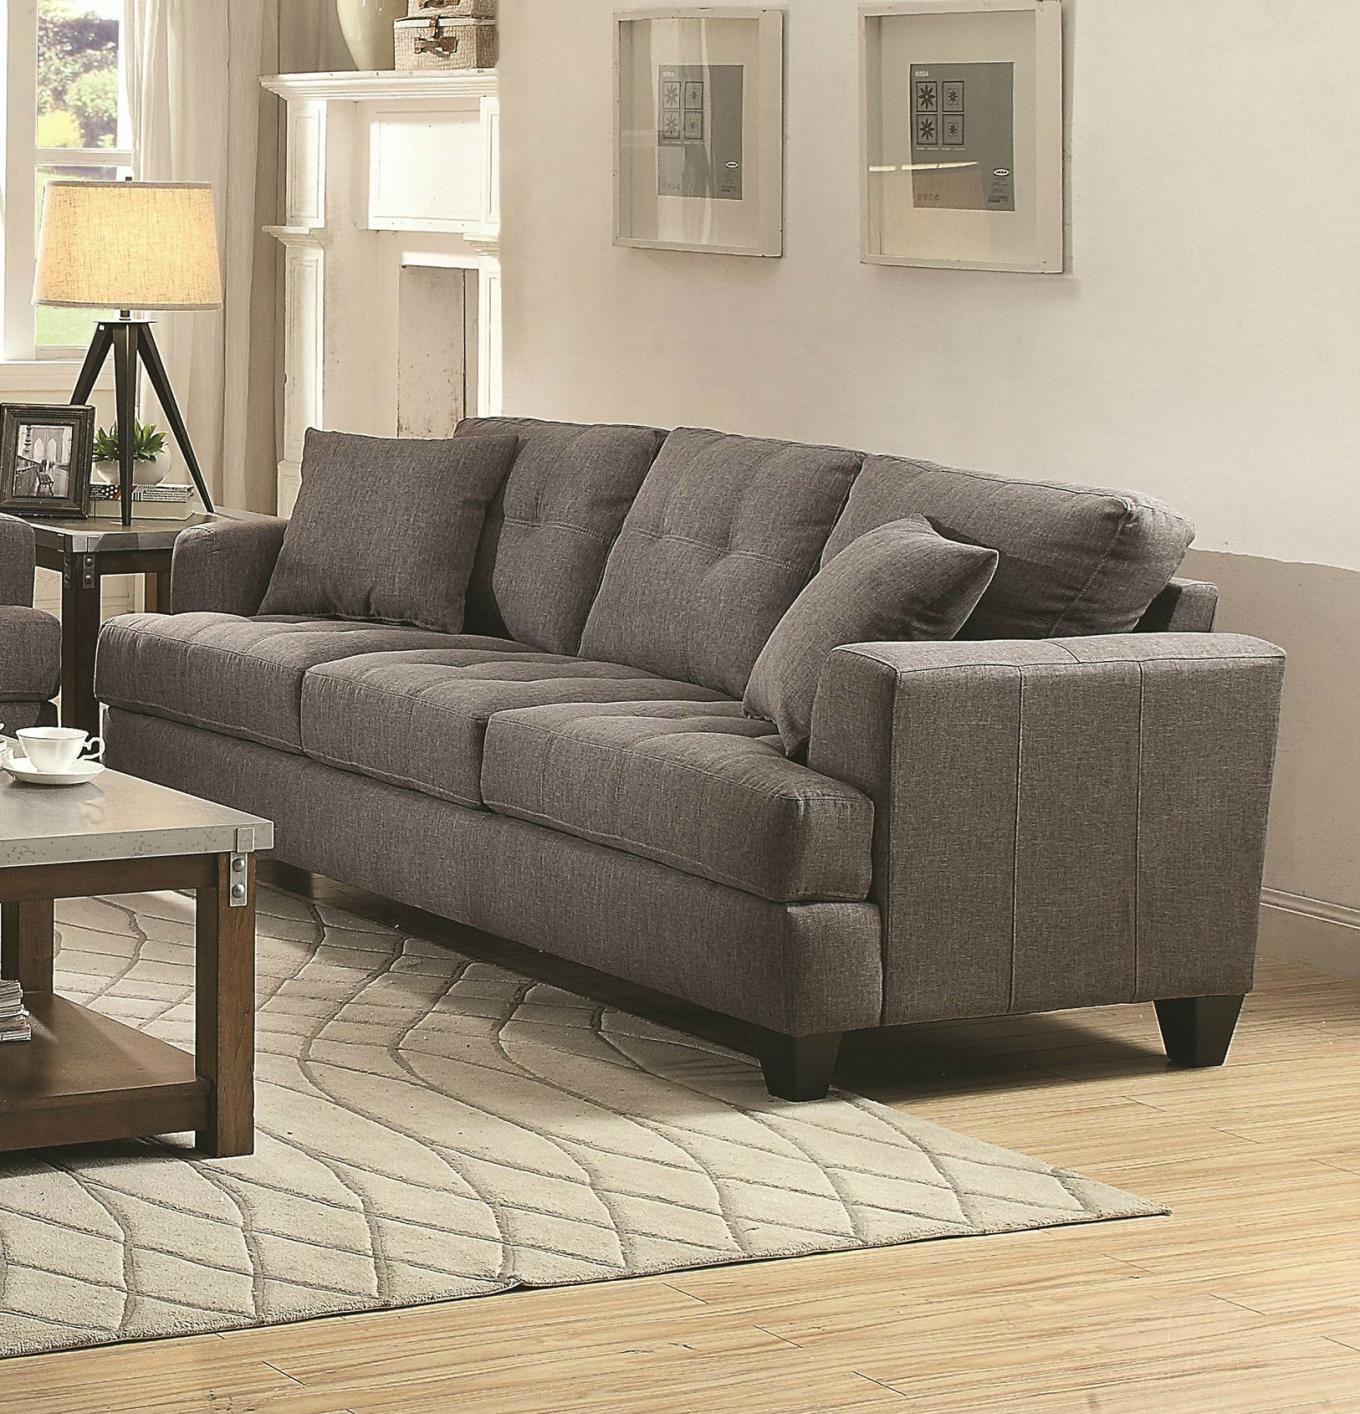 Grey Fabric Sofa Steal A Sofa Furniture Outlet Los Angeles CA